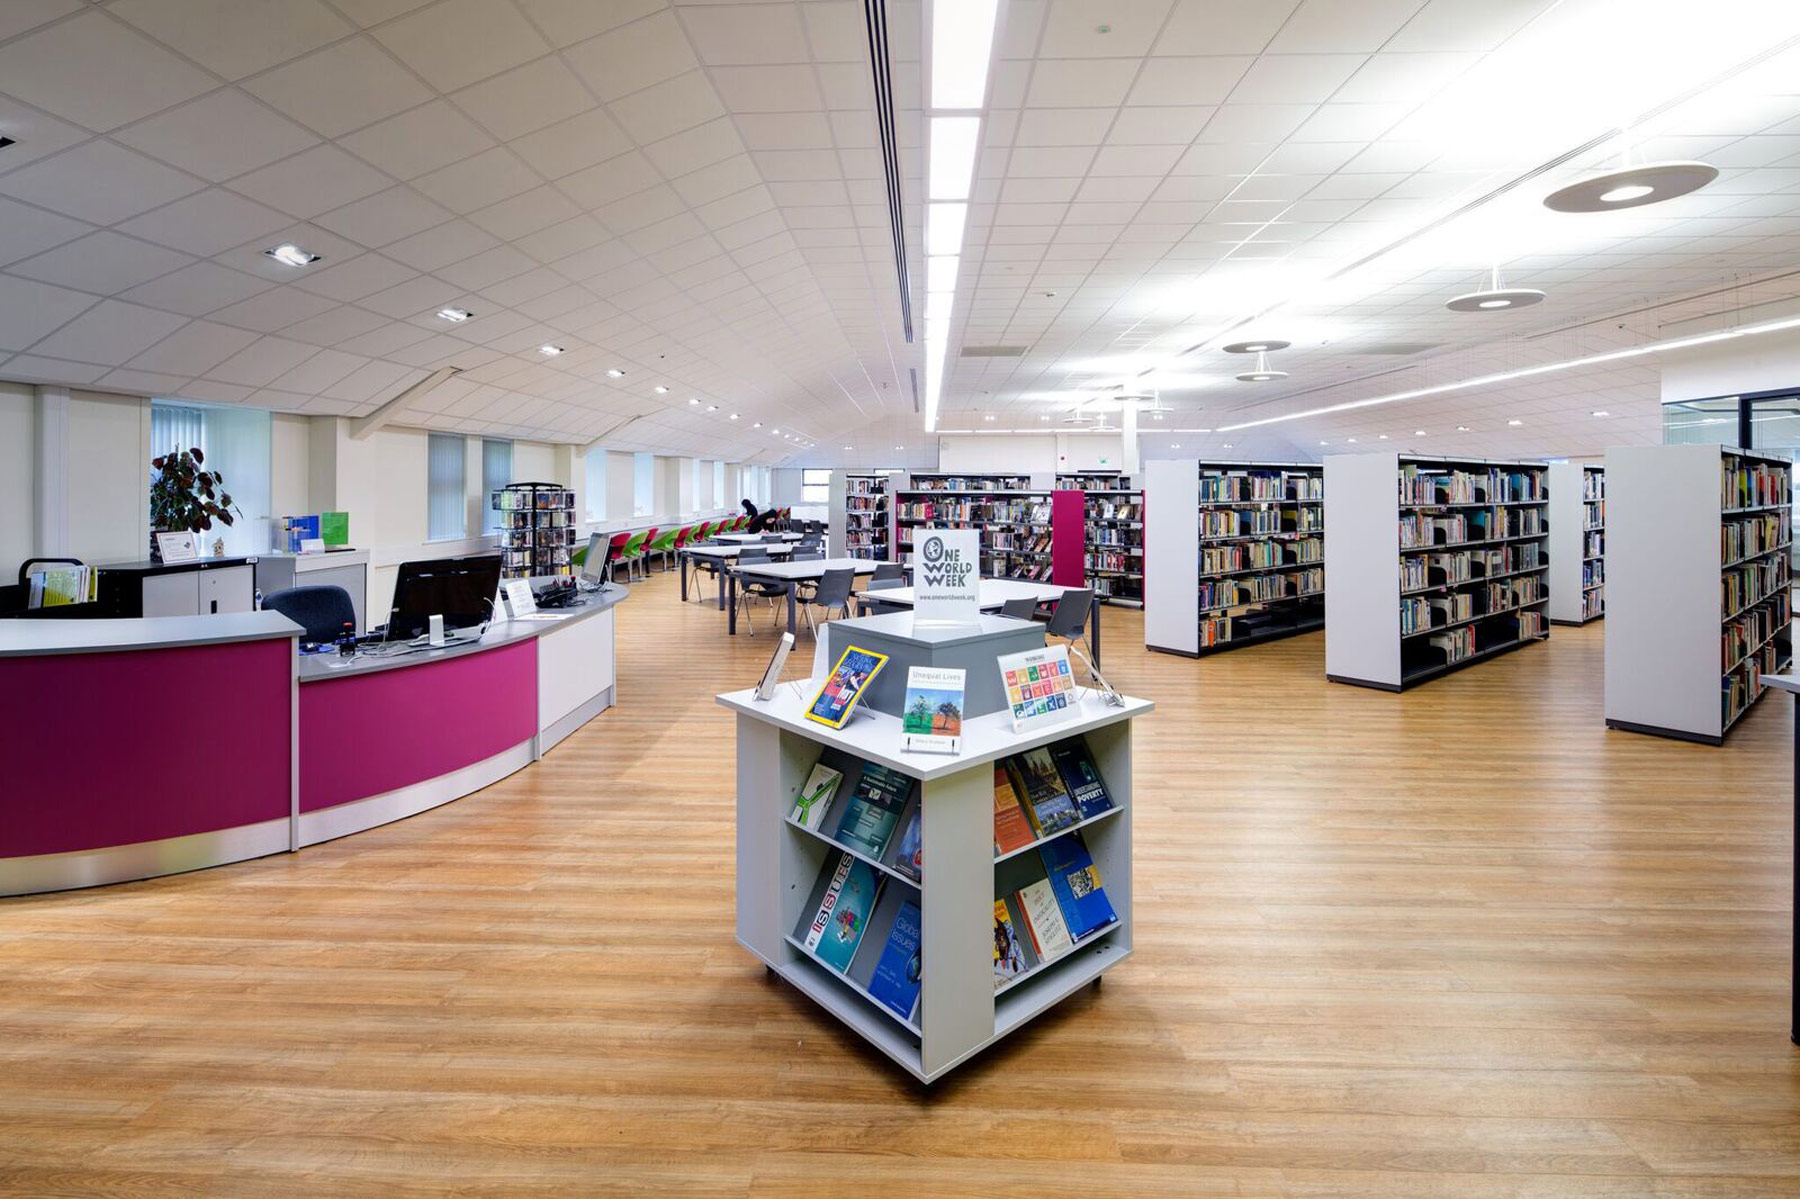 New Academic Library And Study Space Promotes University Style Learning At Holy Cross College